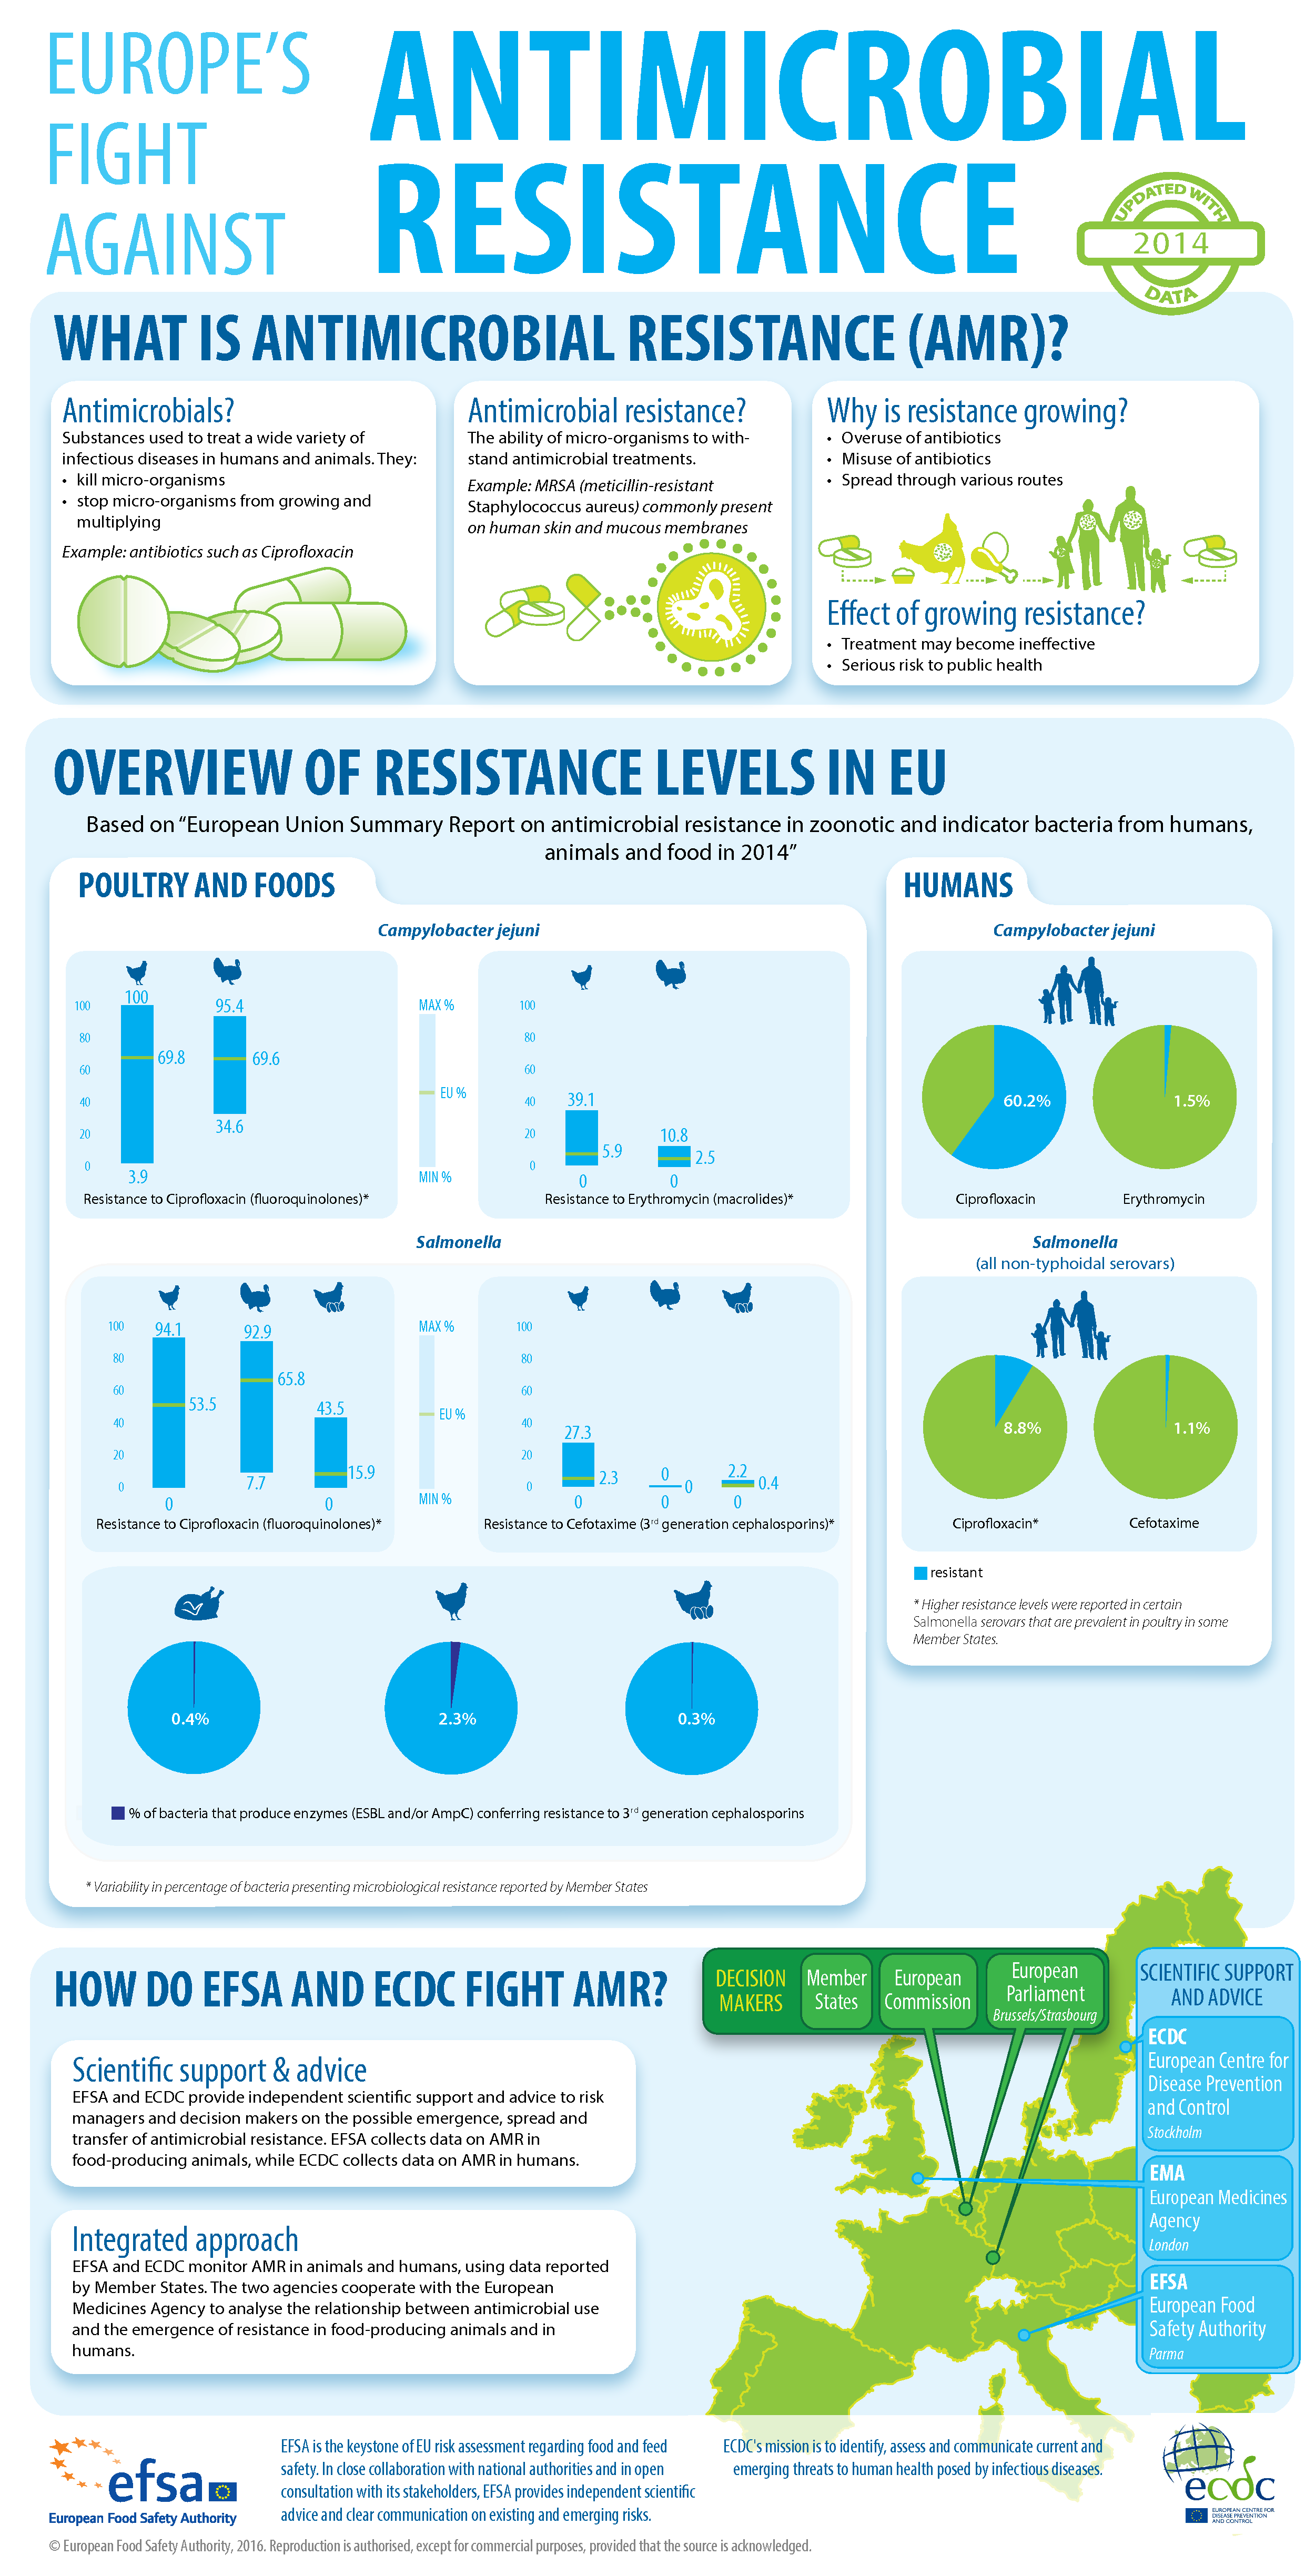 Europe's fight against antimicrobial resistance